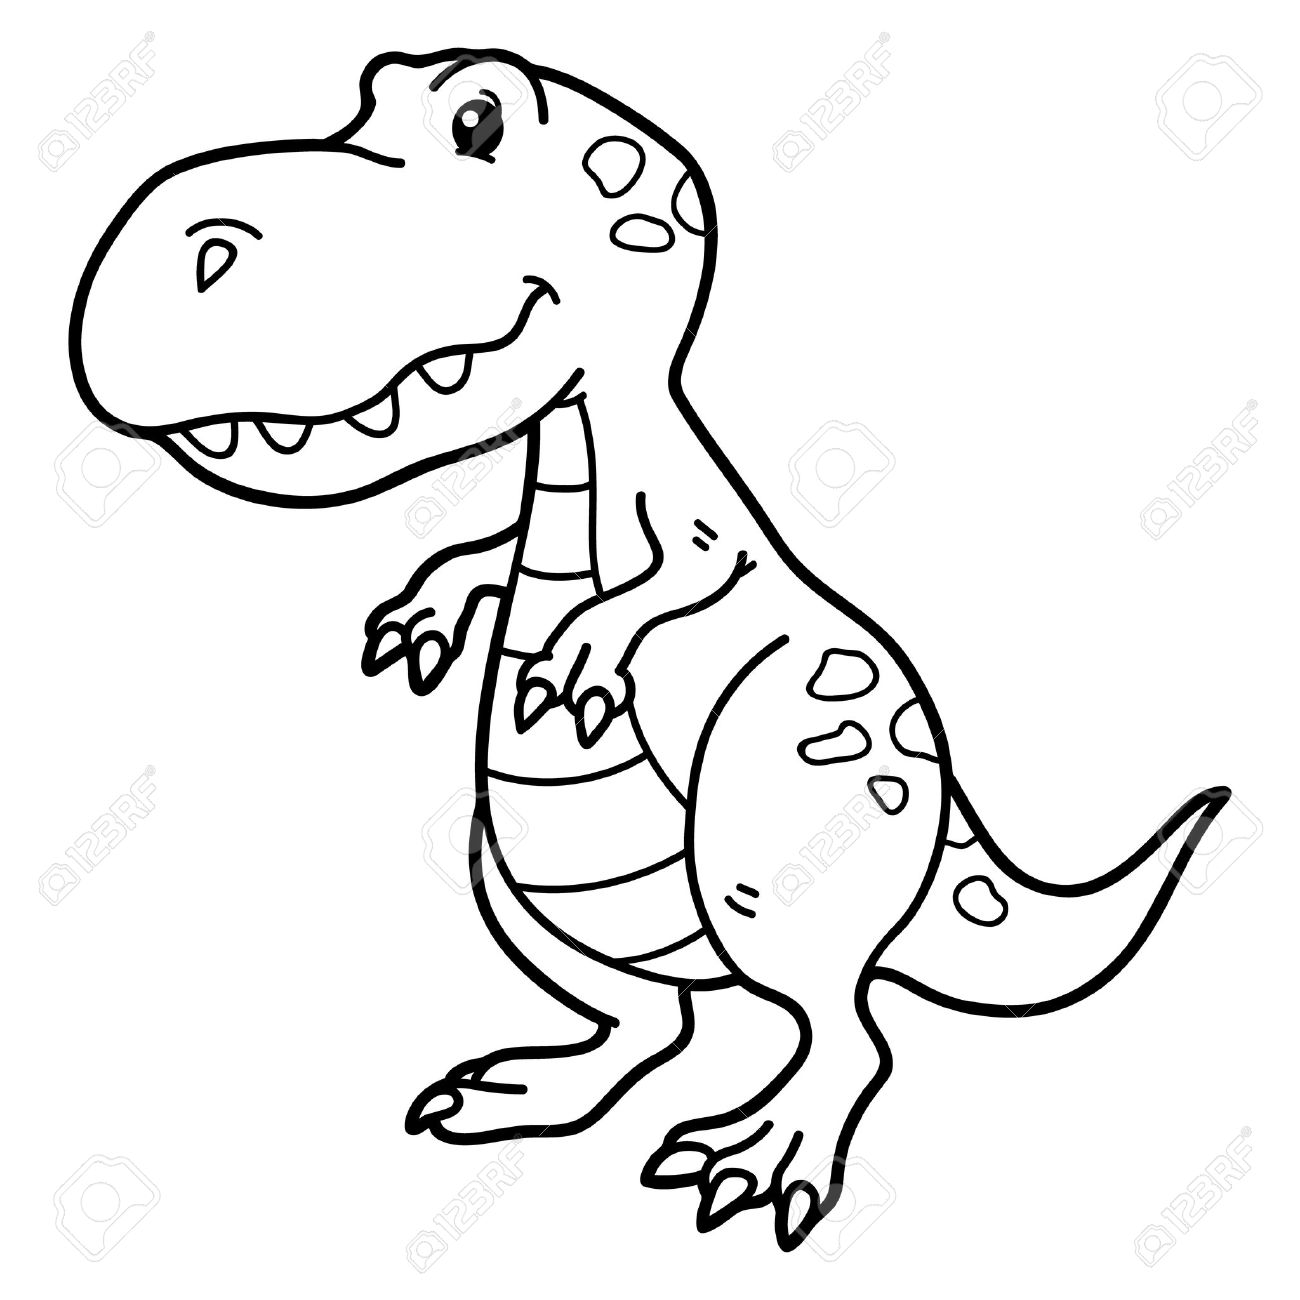 Cute Dinosaur Drawing Tumblr   Free download on ClipArtMag